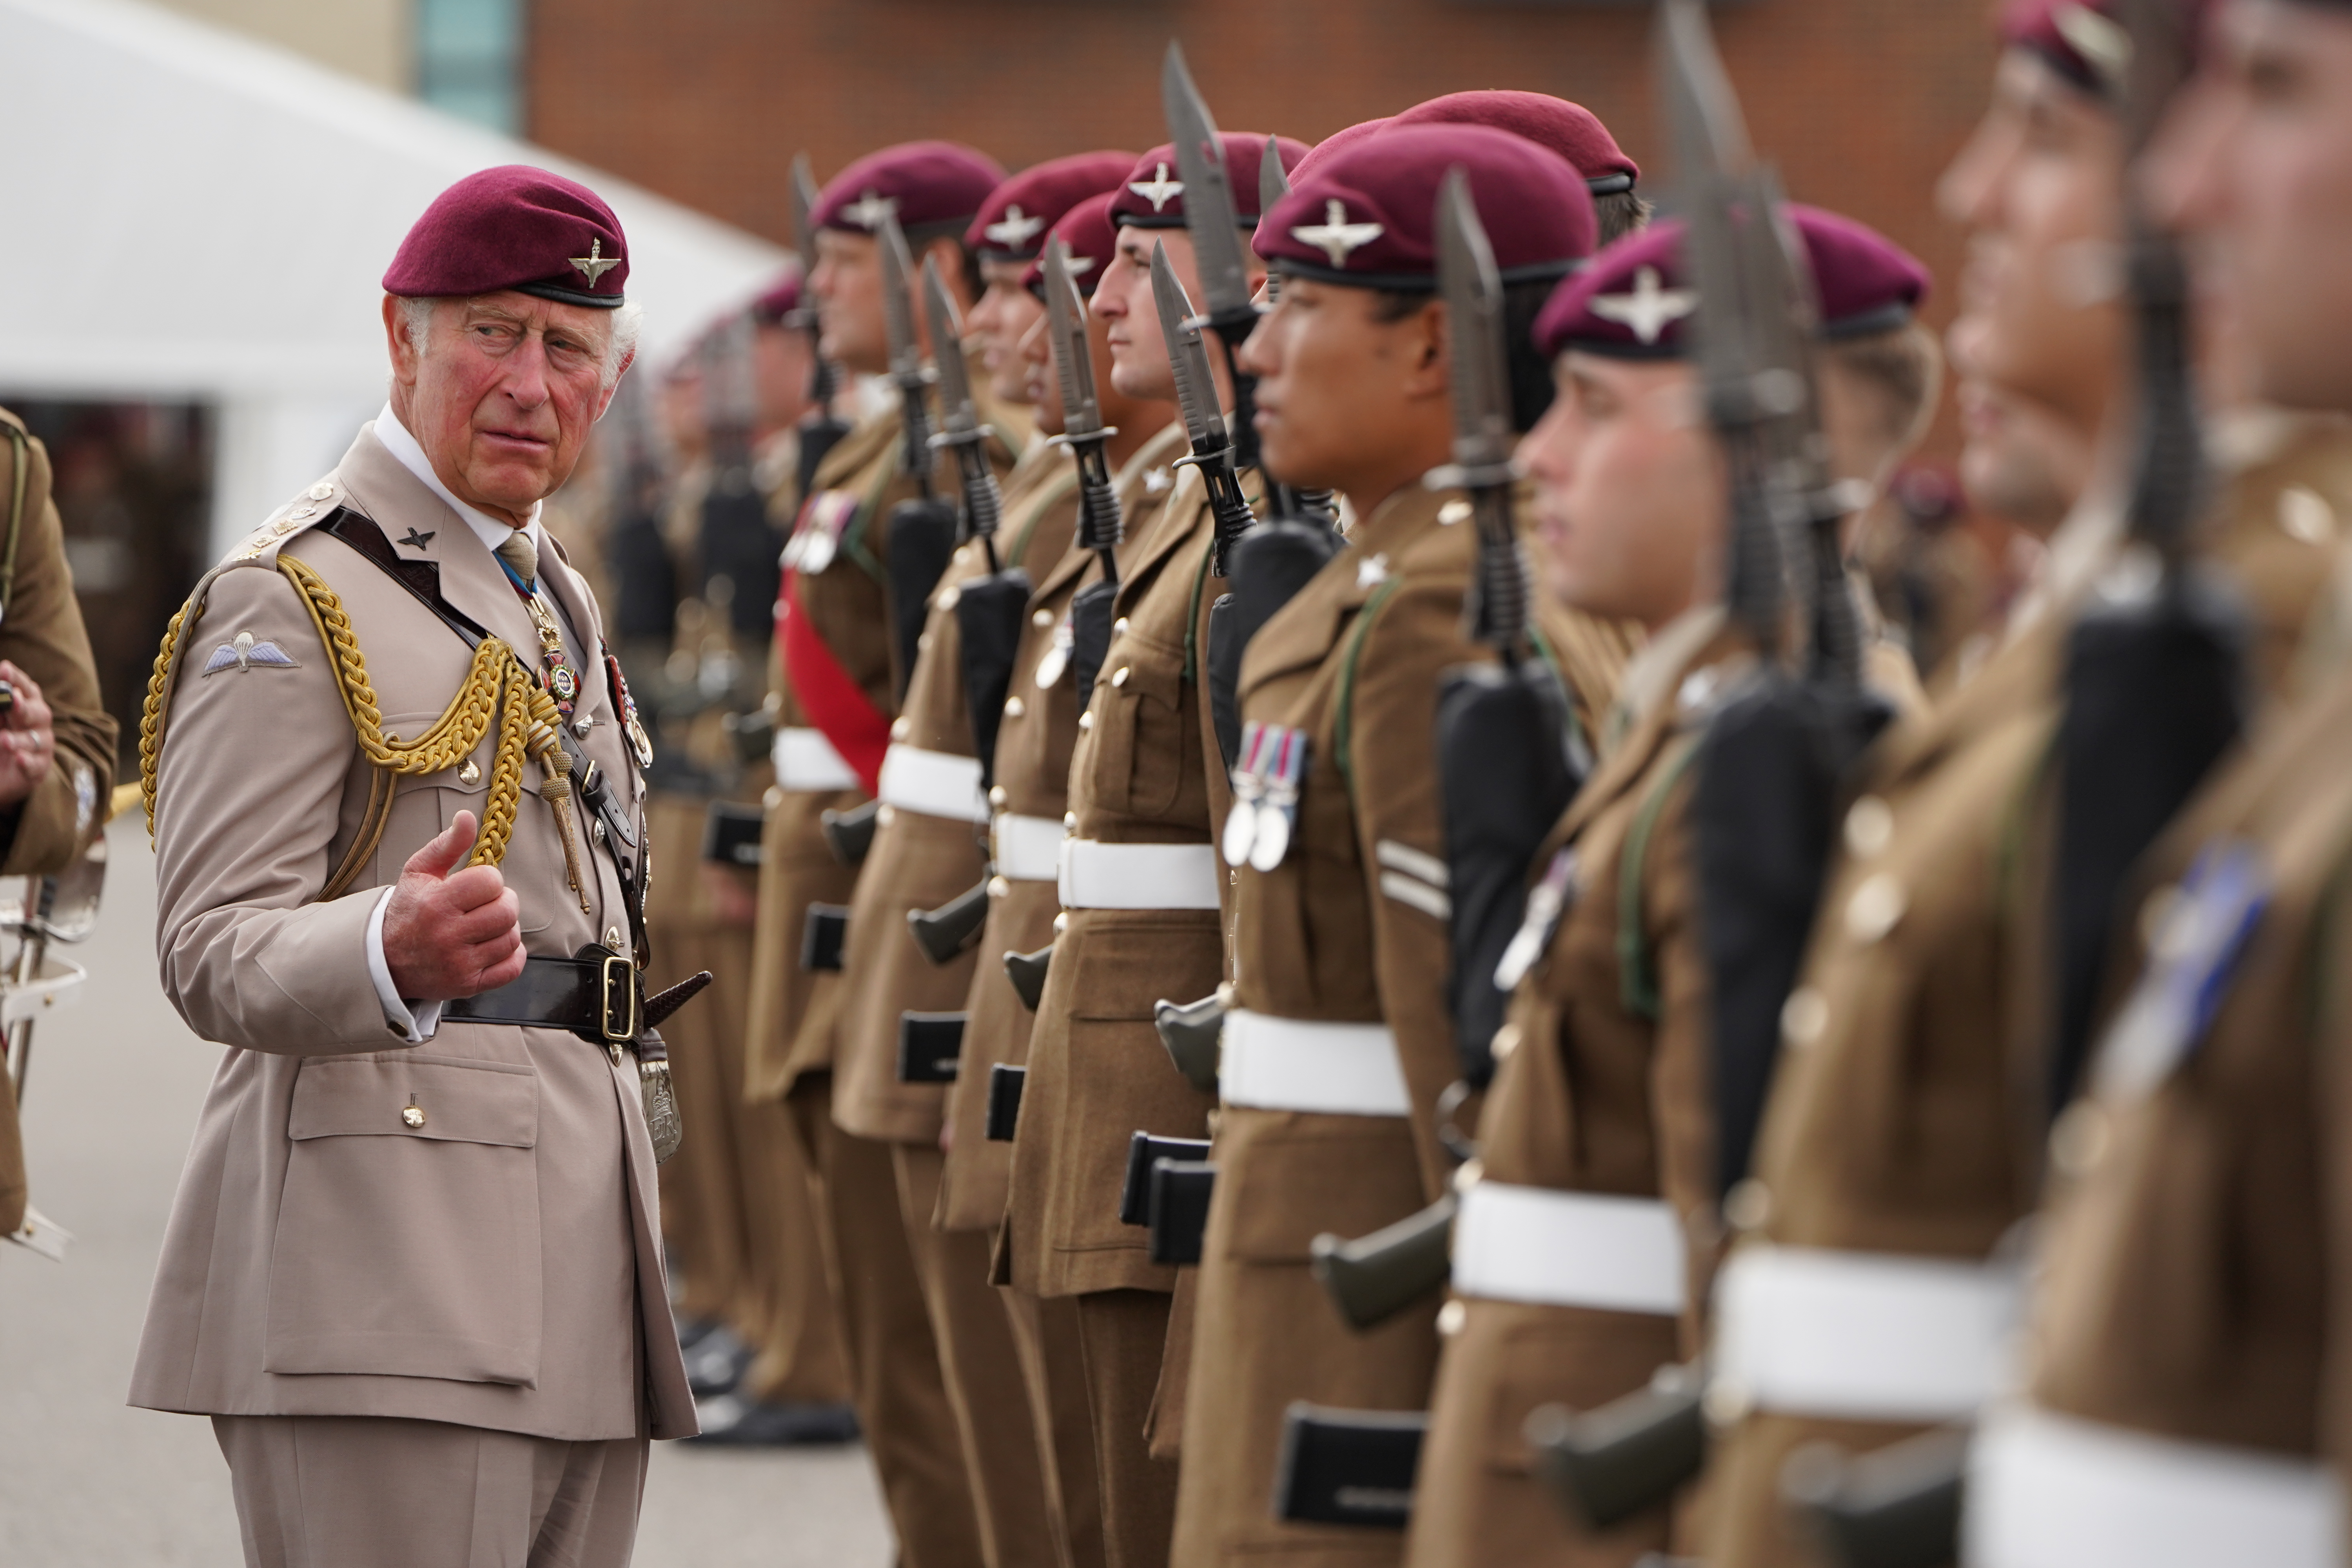 <p>The Prince of Wales, Colonel on Chief, inspects the front rank of representatives from 1st, 2nd and 3rd Battalions of the Parachute Regiment during a ceremony to present new colours to the Regiment at Merville Barracks in Colchester. Picture date: Tuesday July 13, 2021.</p>